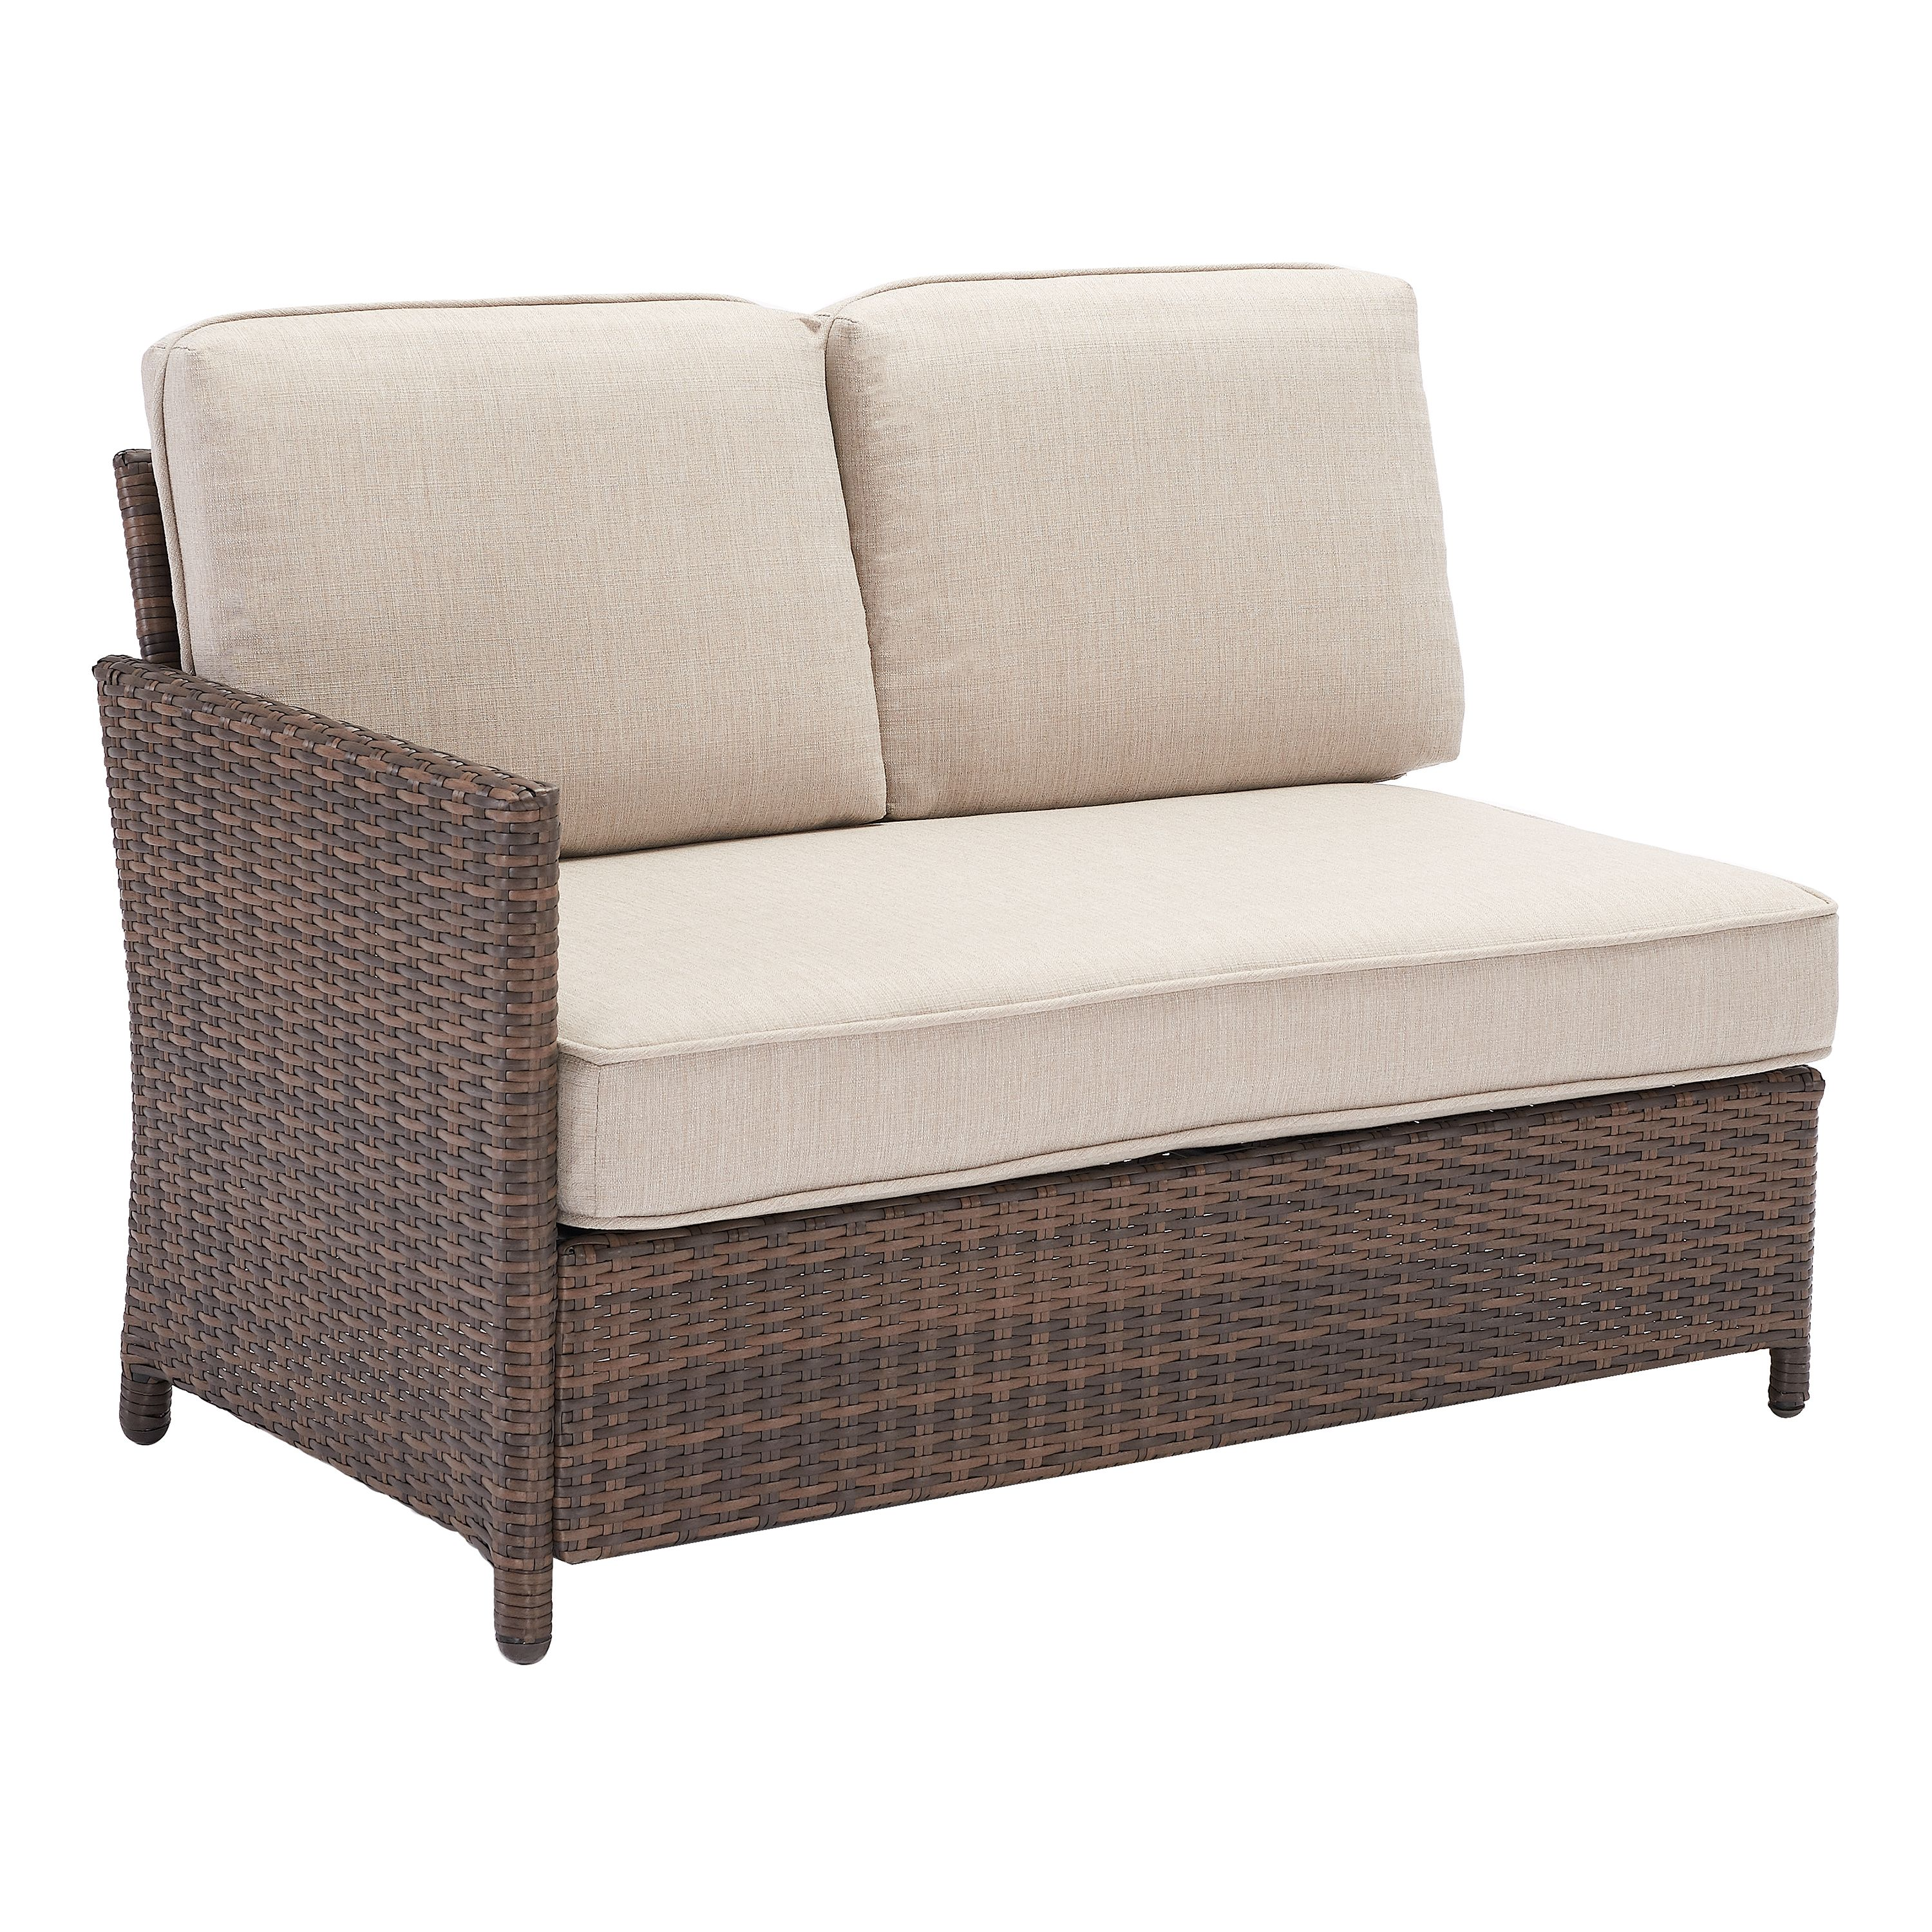 Better Homes & Gardens Mayers Bay 2-Piece Sectional Seating and Table Set with Tan Cushions